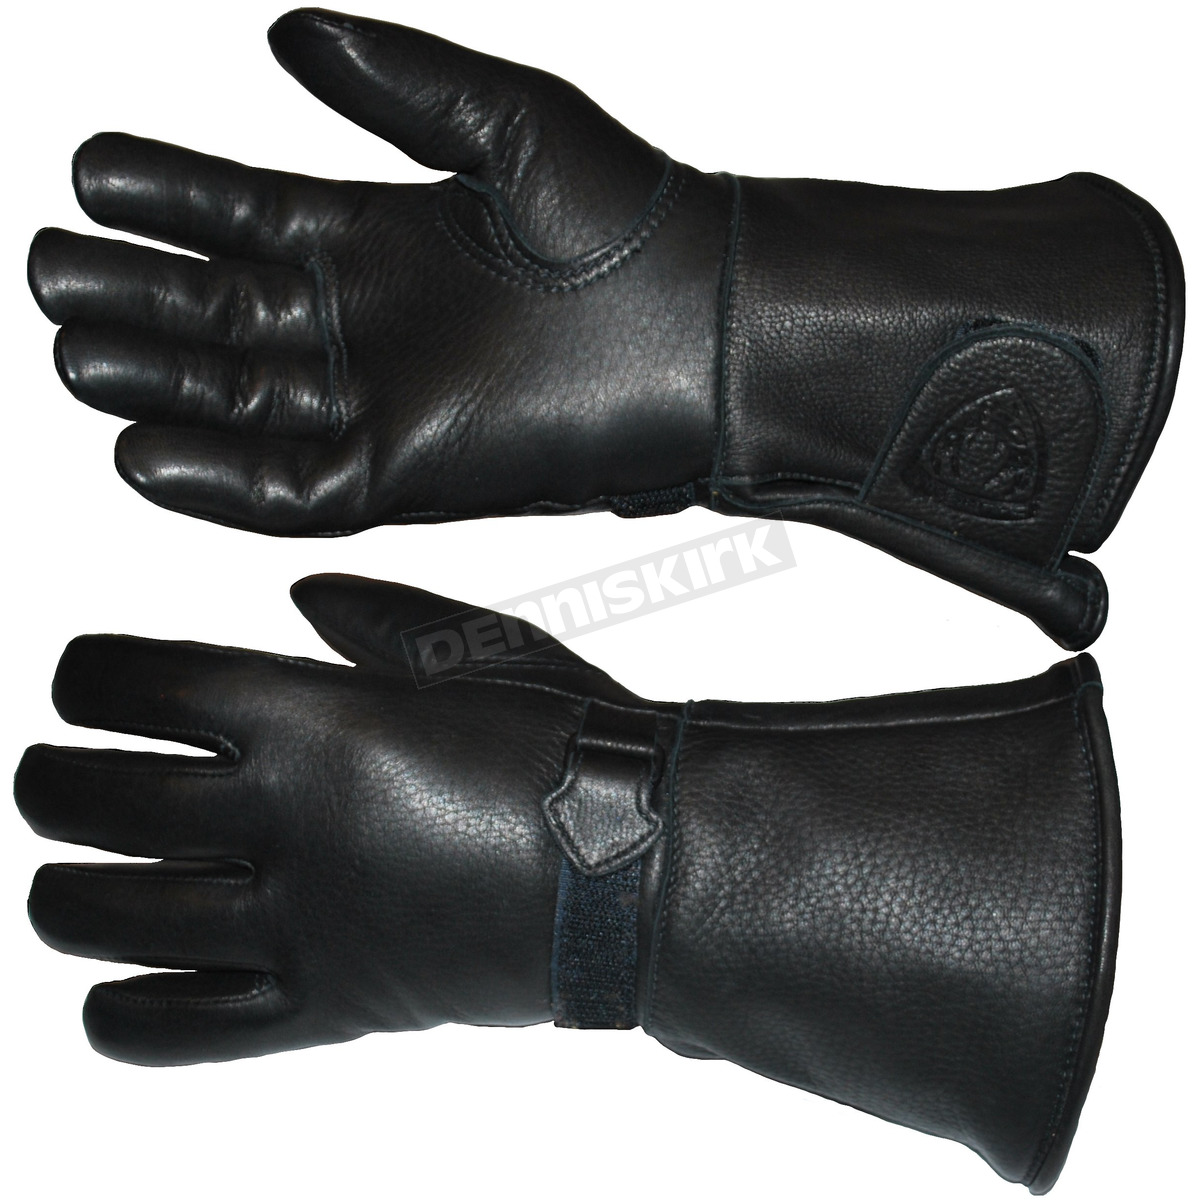 Motorcycle gloves thinsulate - Churchill Maverick Classic Waterproof Gauntlet Gloves Cgtw Blk S Loading Zoom